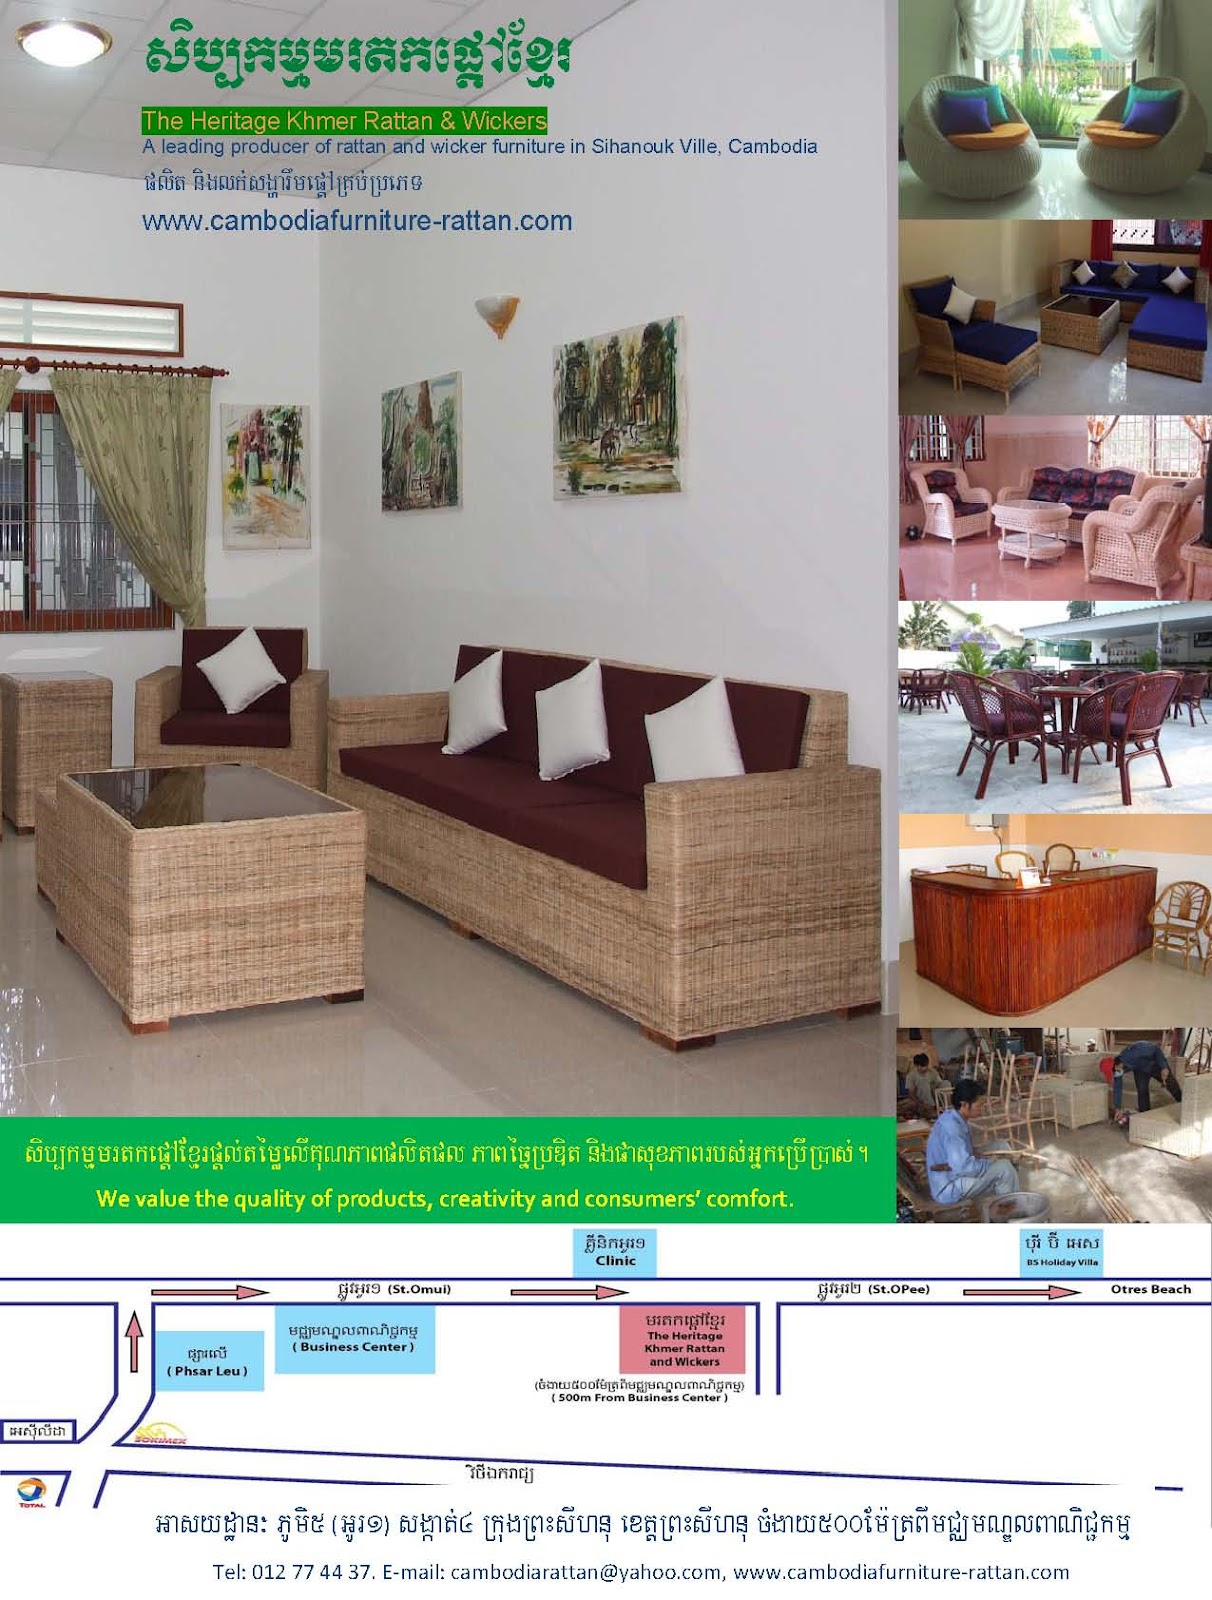 We Are Producer Of Rattan And Wicker Furniture And Accessories In